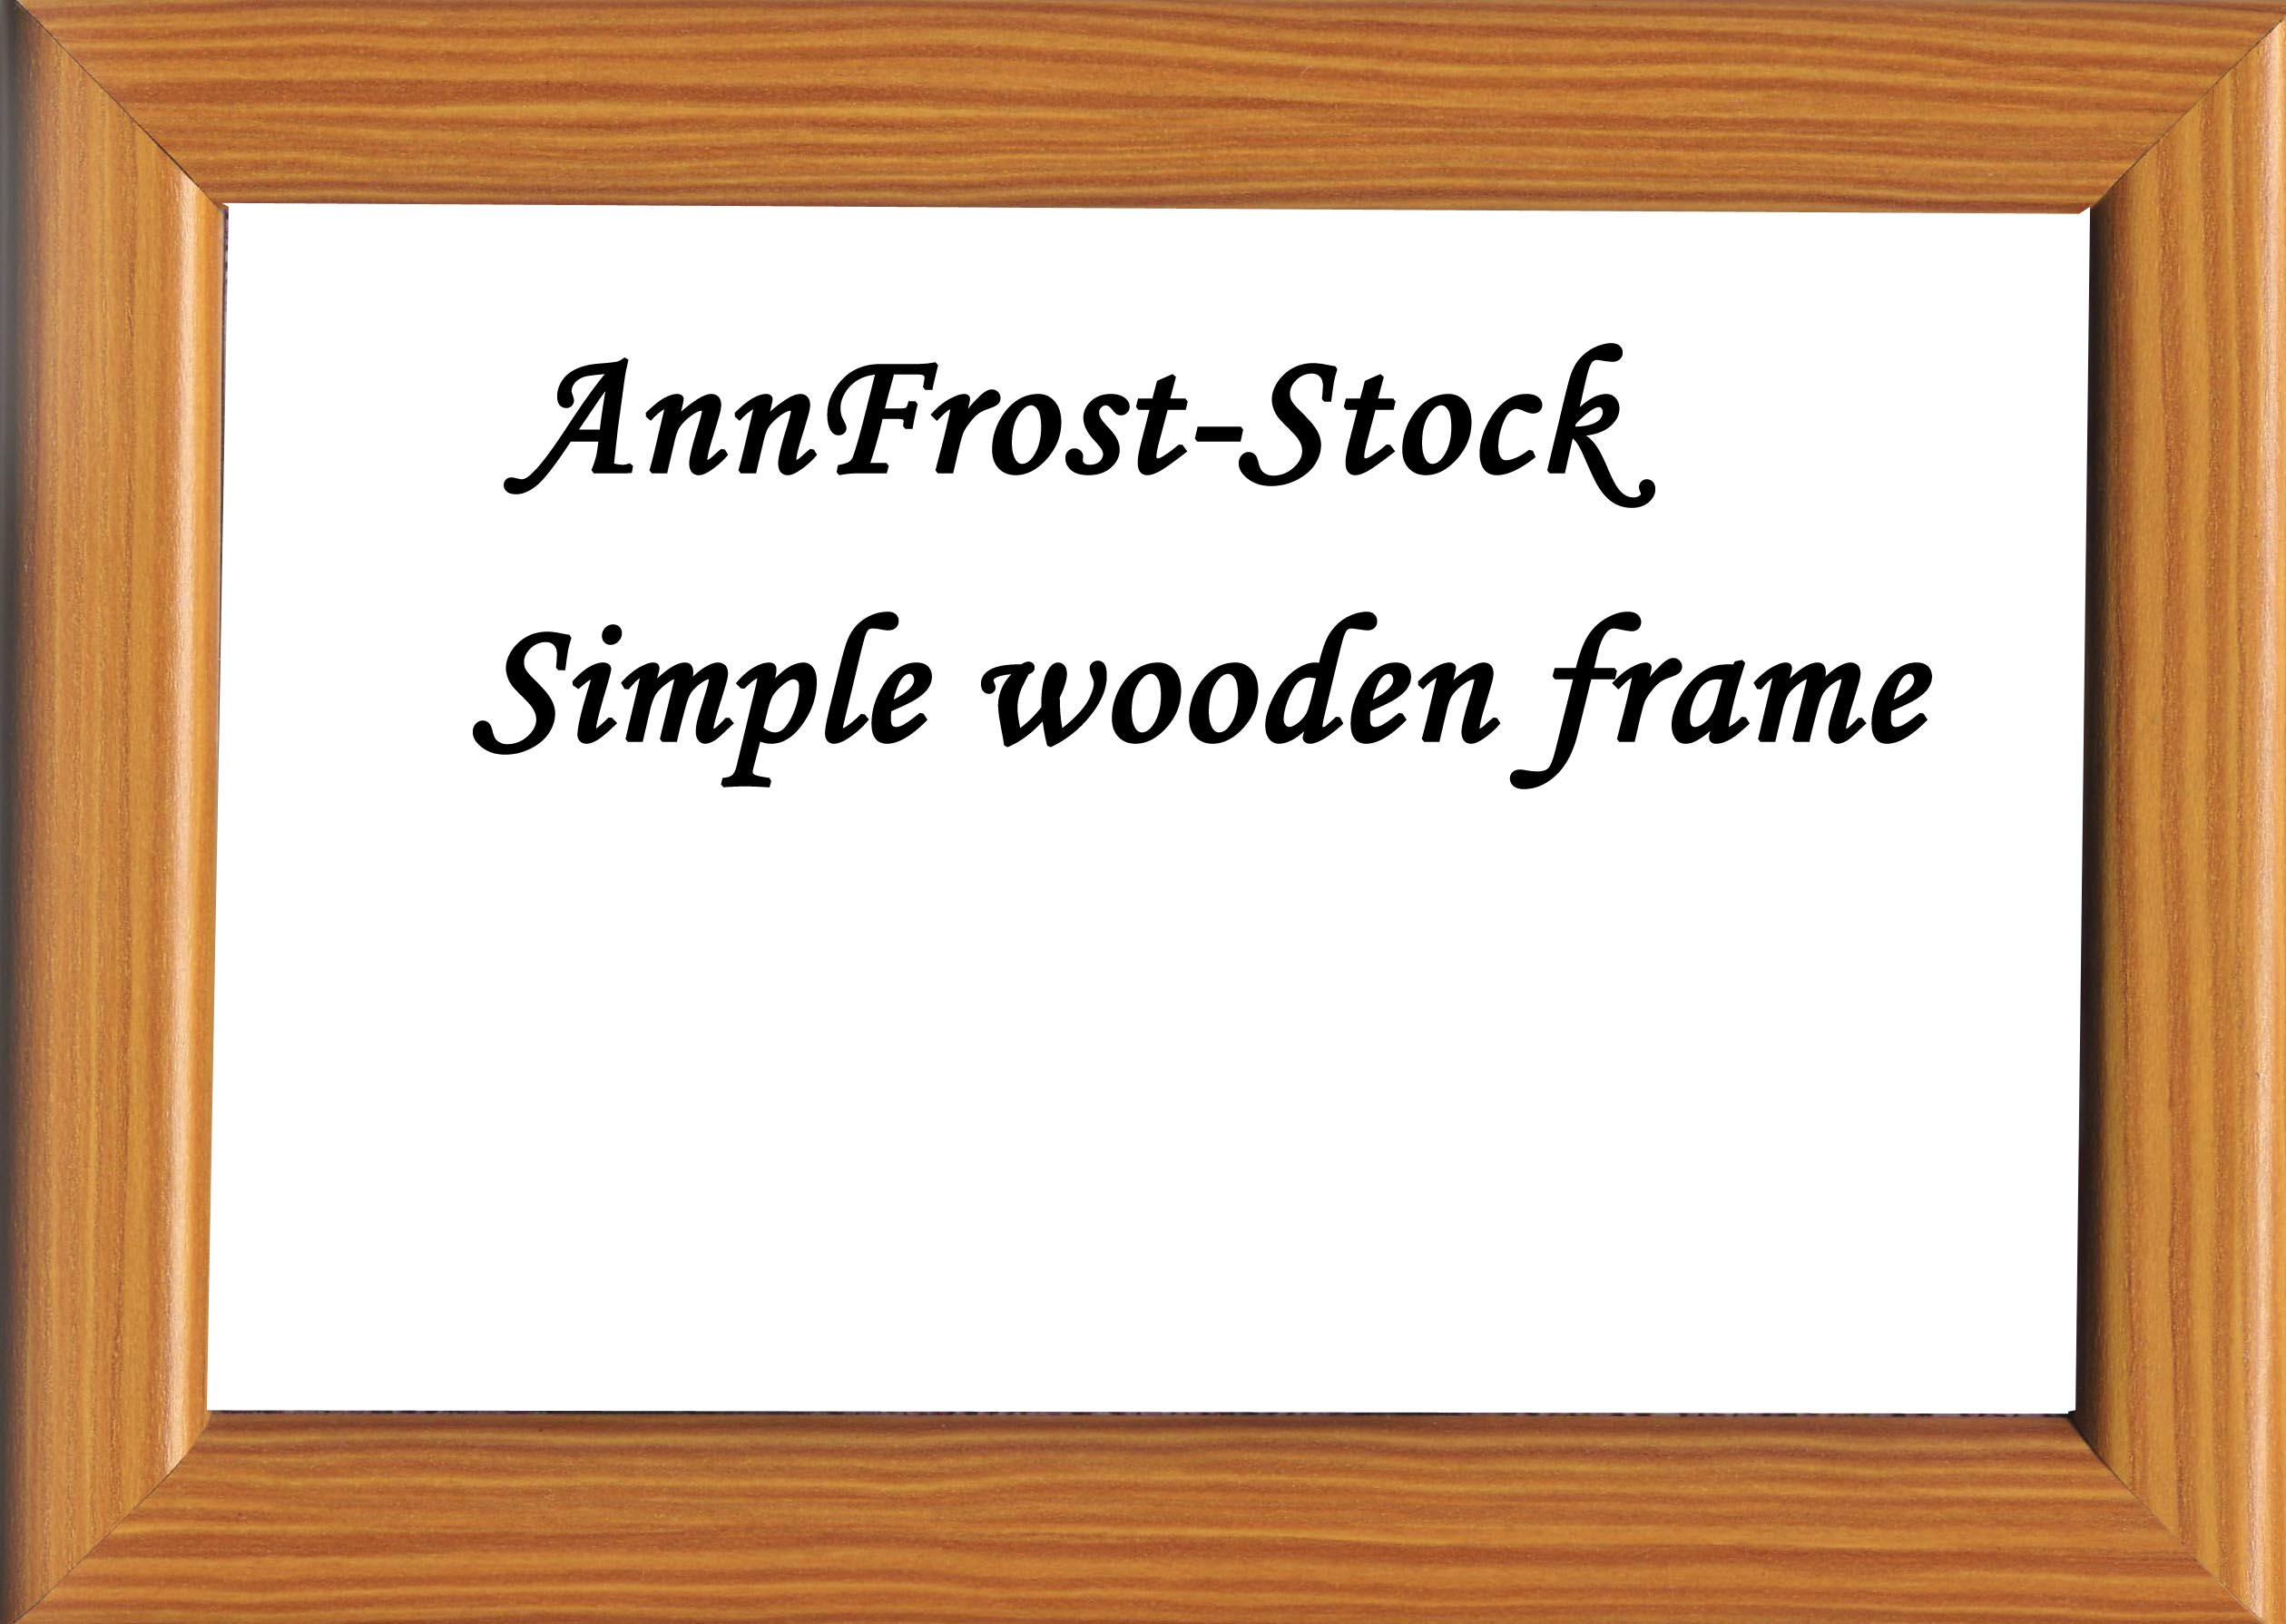 simple wooden frame by annfrost stock